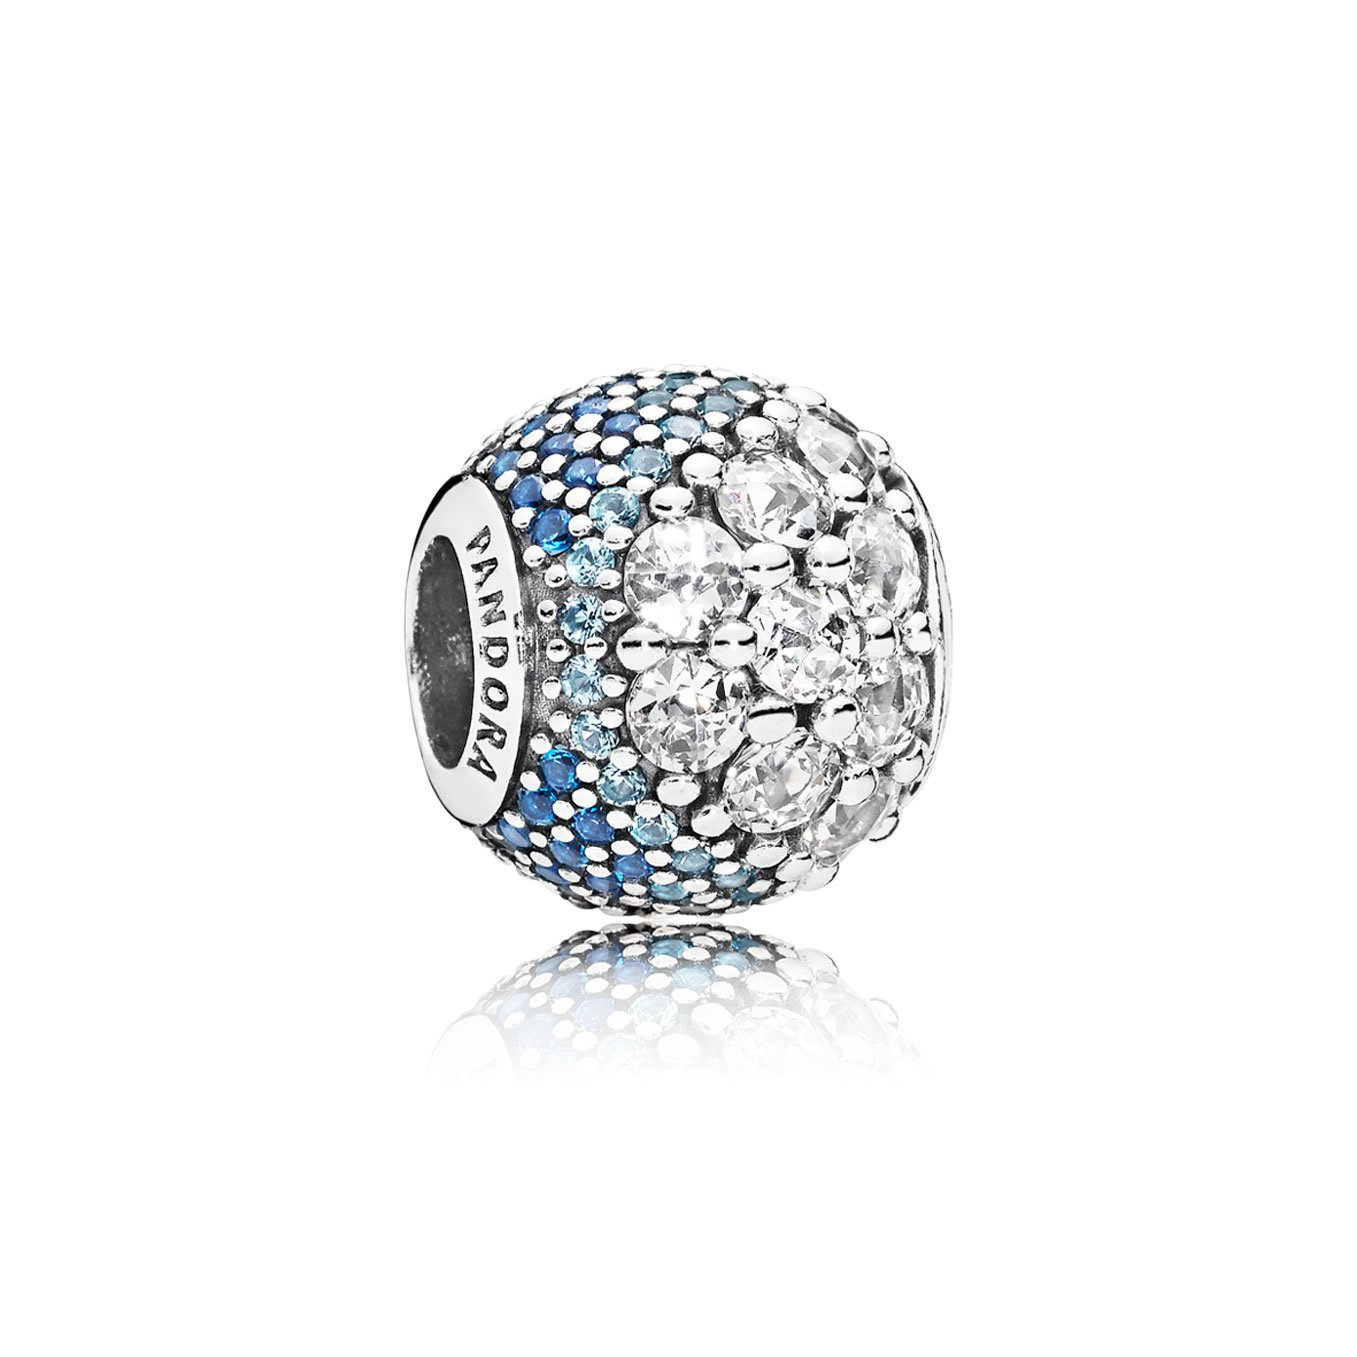 Thilo Kettler Pertaining To 2017 Pandora Logo Pavé Rings (Gallery 21 of 25)